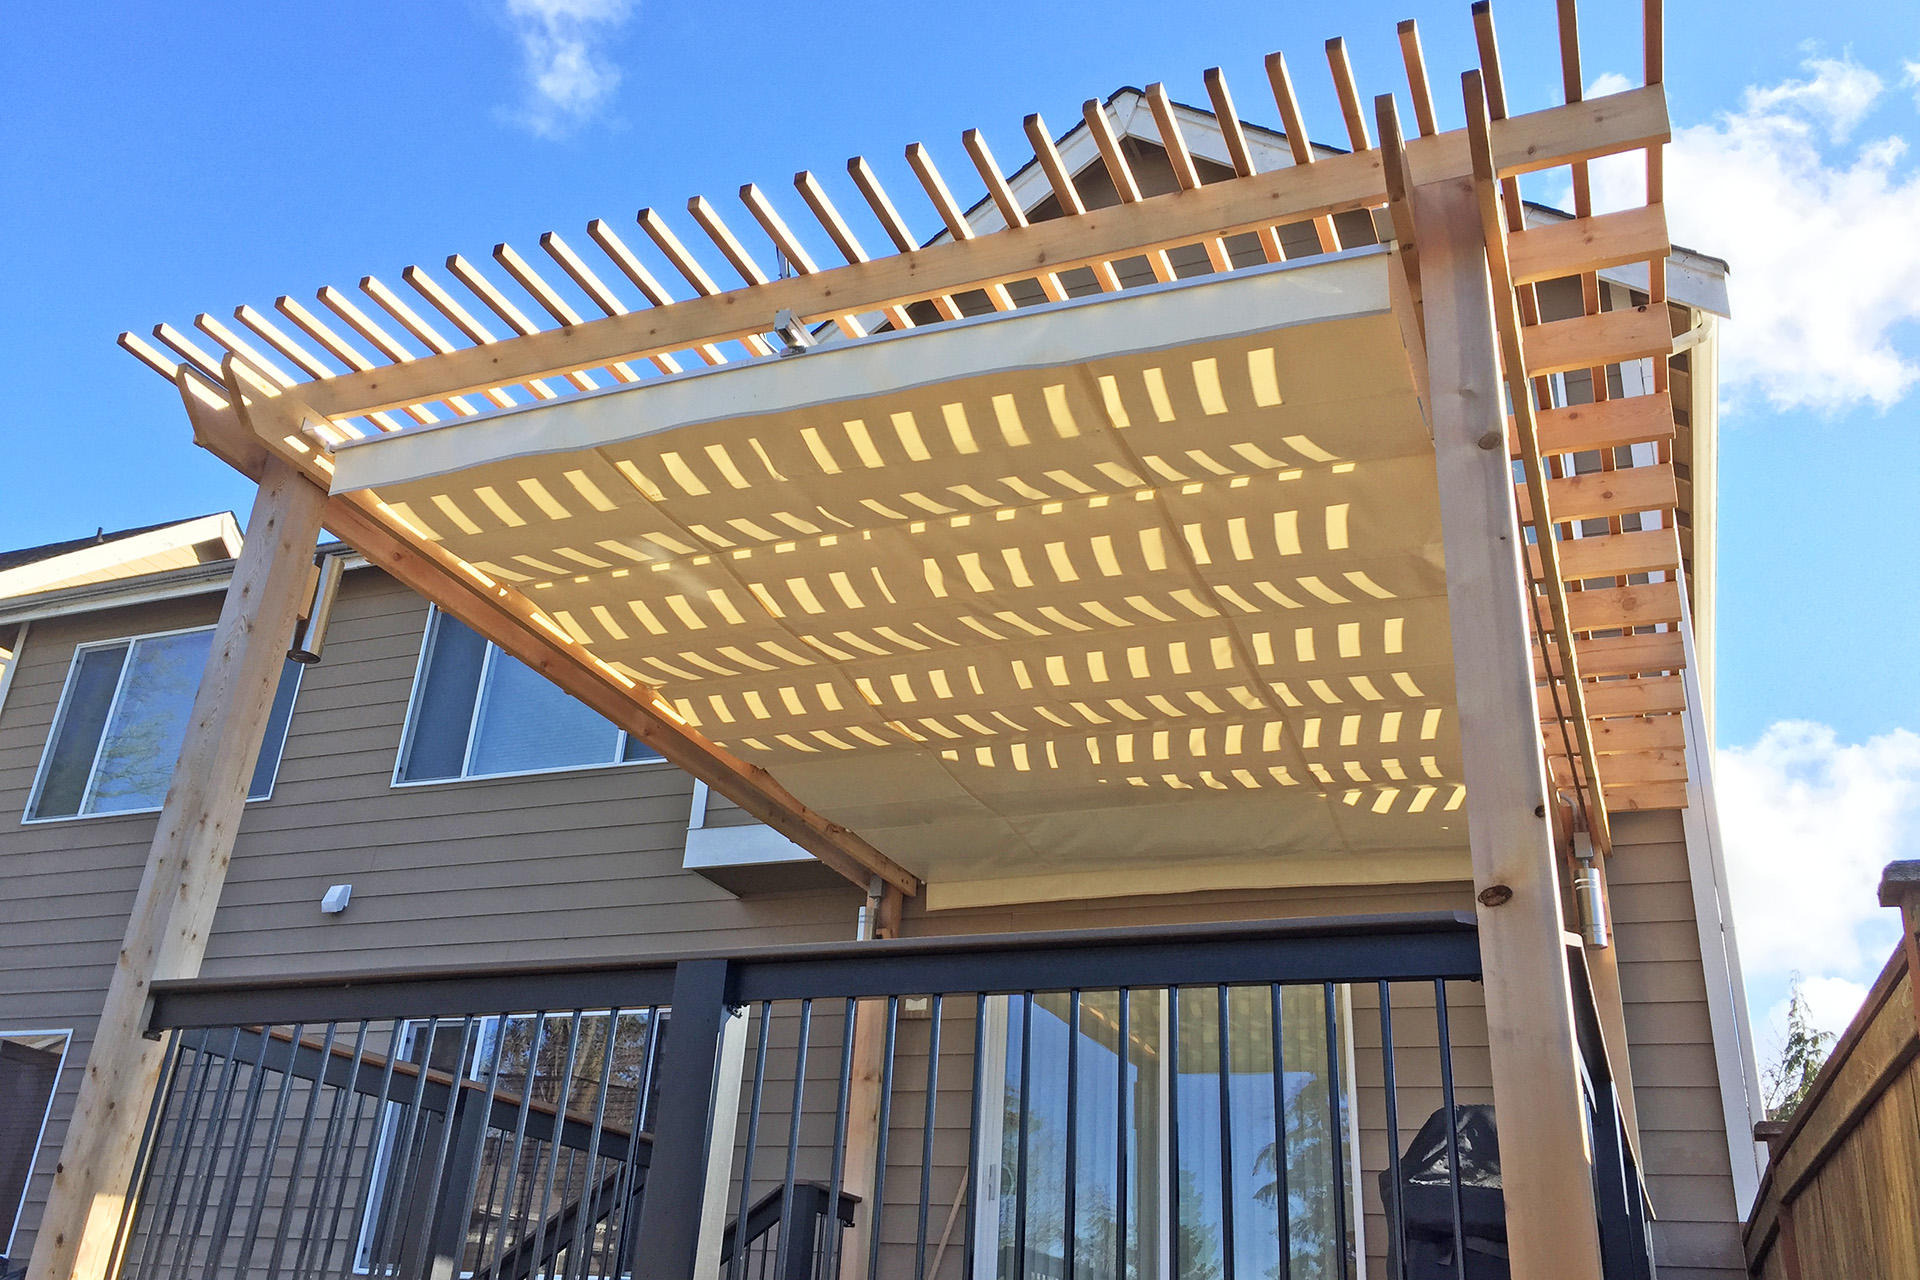 Retractable Canopy, Seattle - ShadeFX